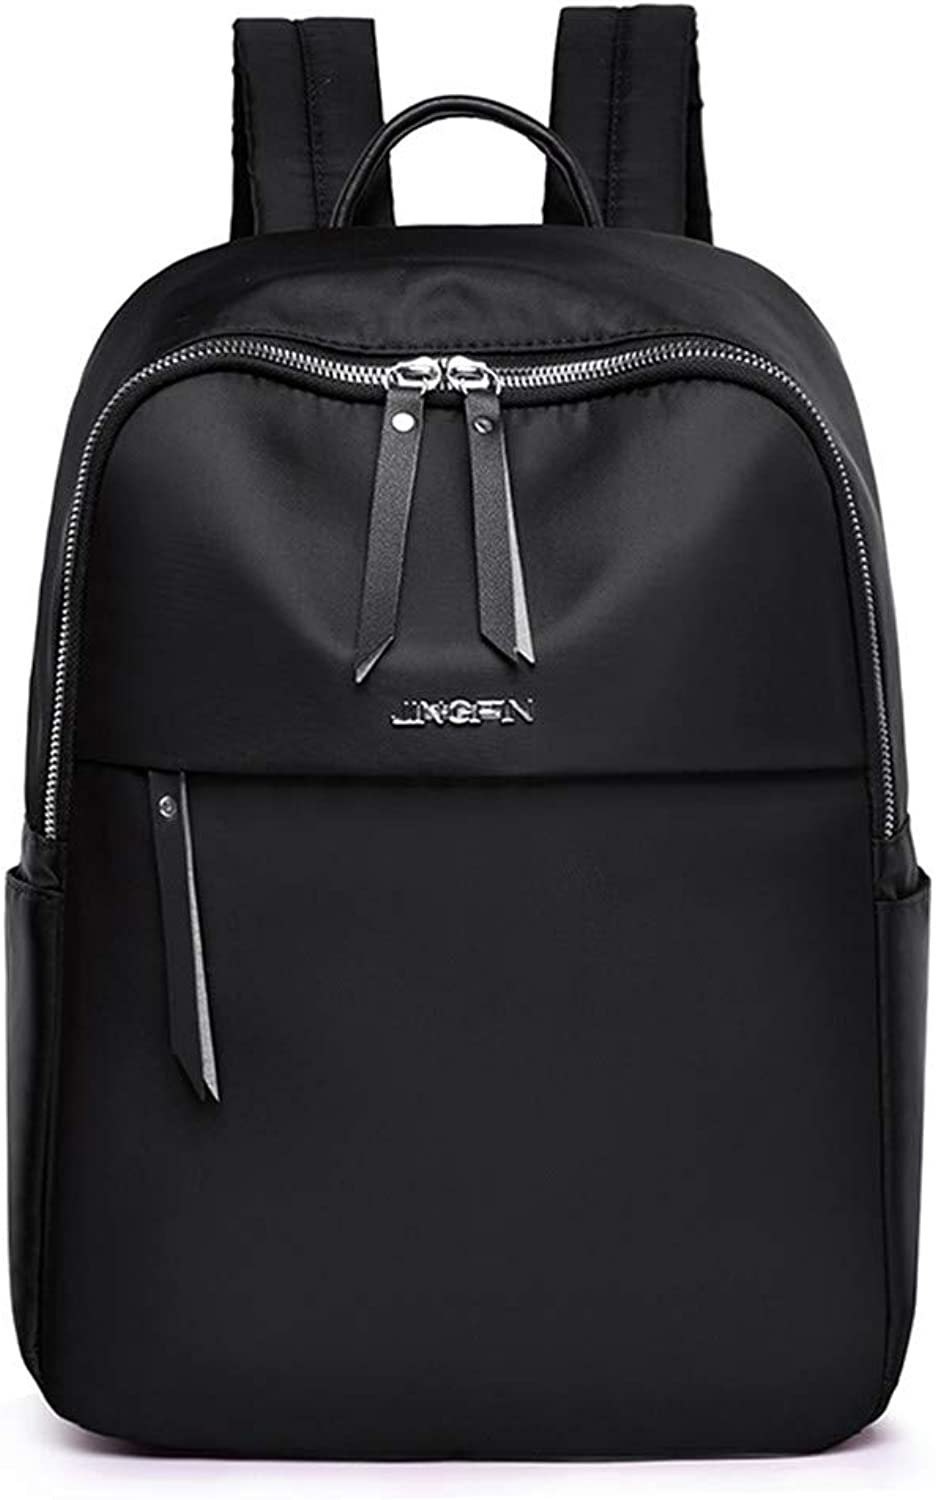 573d84452ffd Oxford Student Simple Practical Casual Black Bag, Backpack Nylon ...